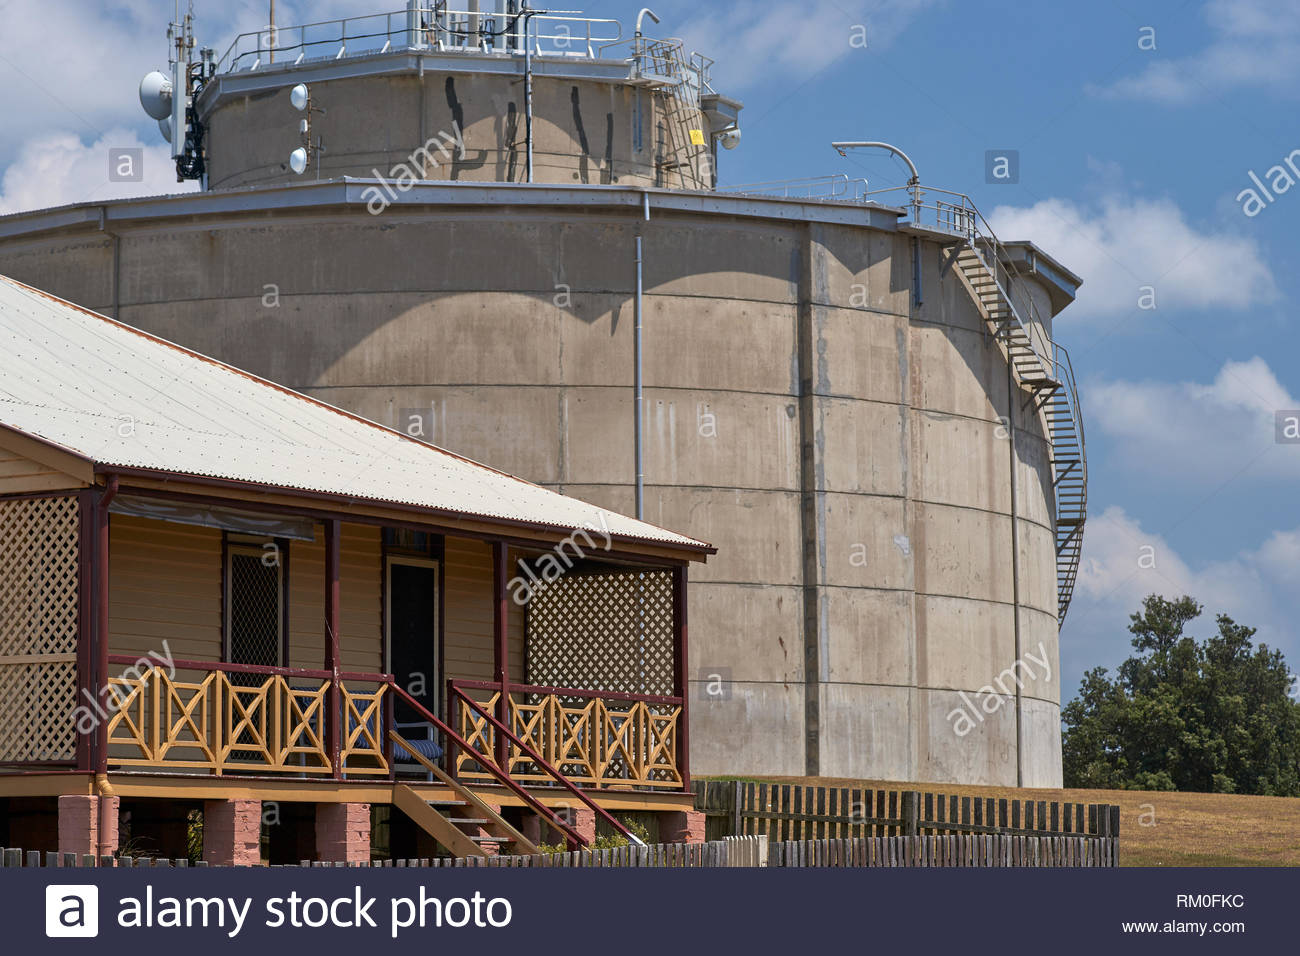 The historic Boatman's Cottages; situated on Pilot Hill - dwarfed by a large concrete water-reservoir - on the grassy headland; at Yamba, Australia. - Stock Image